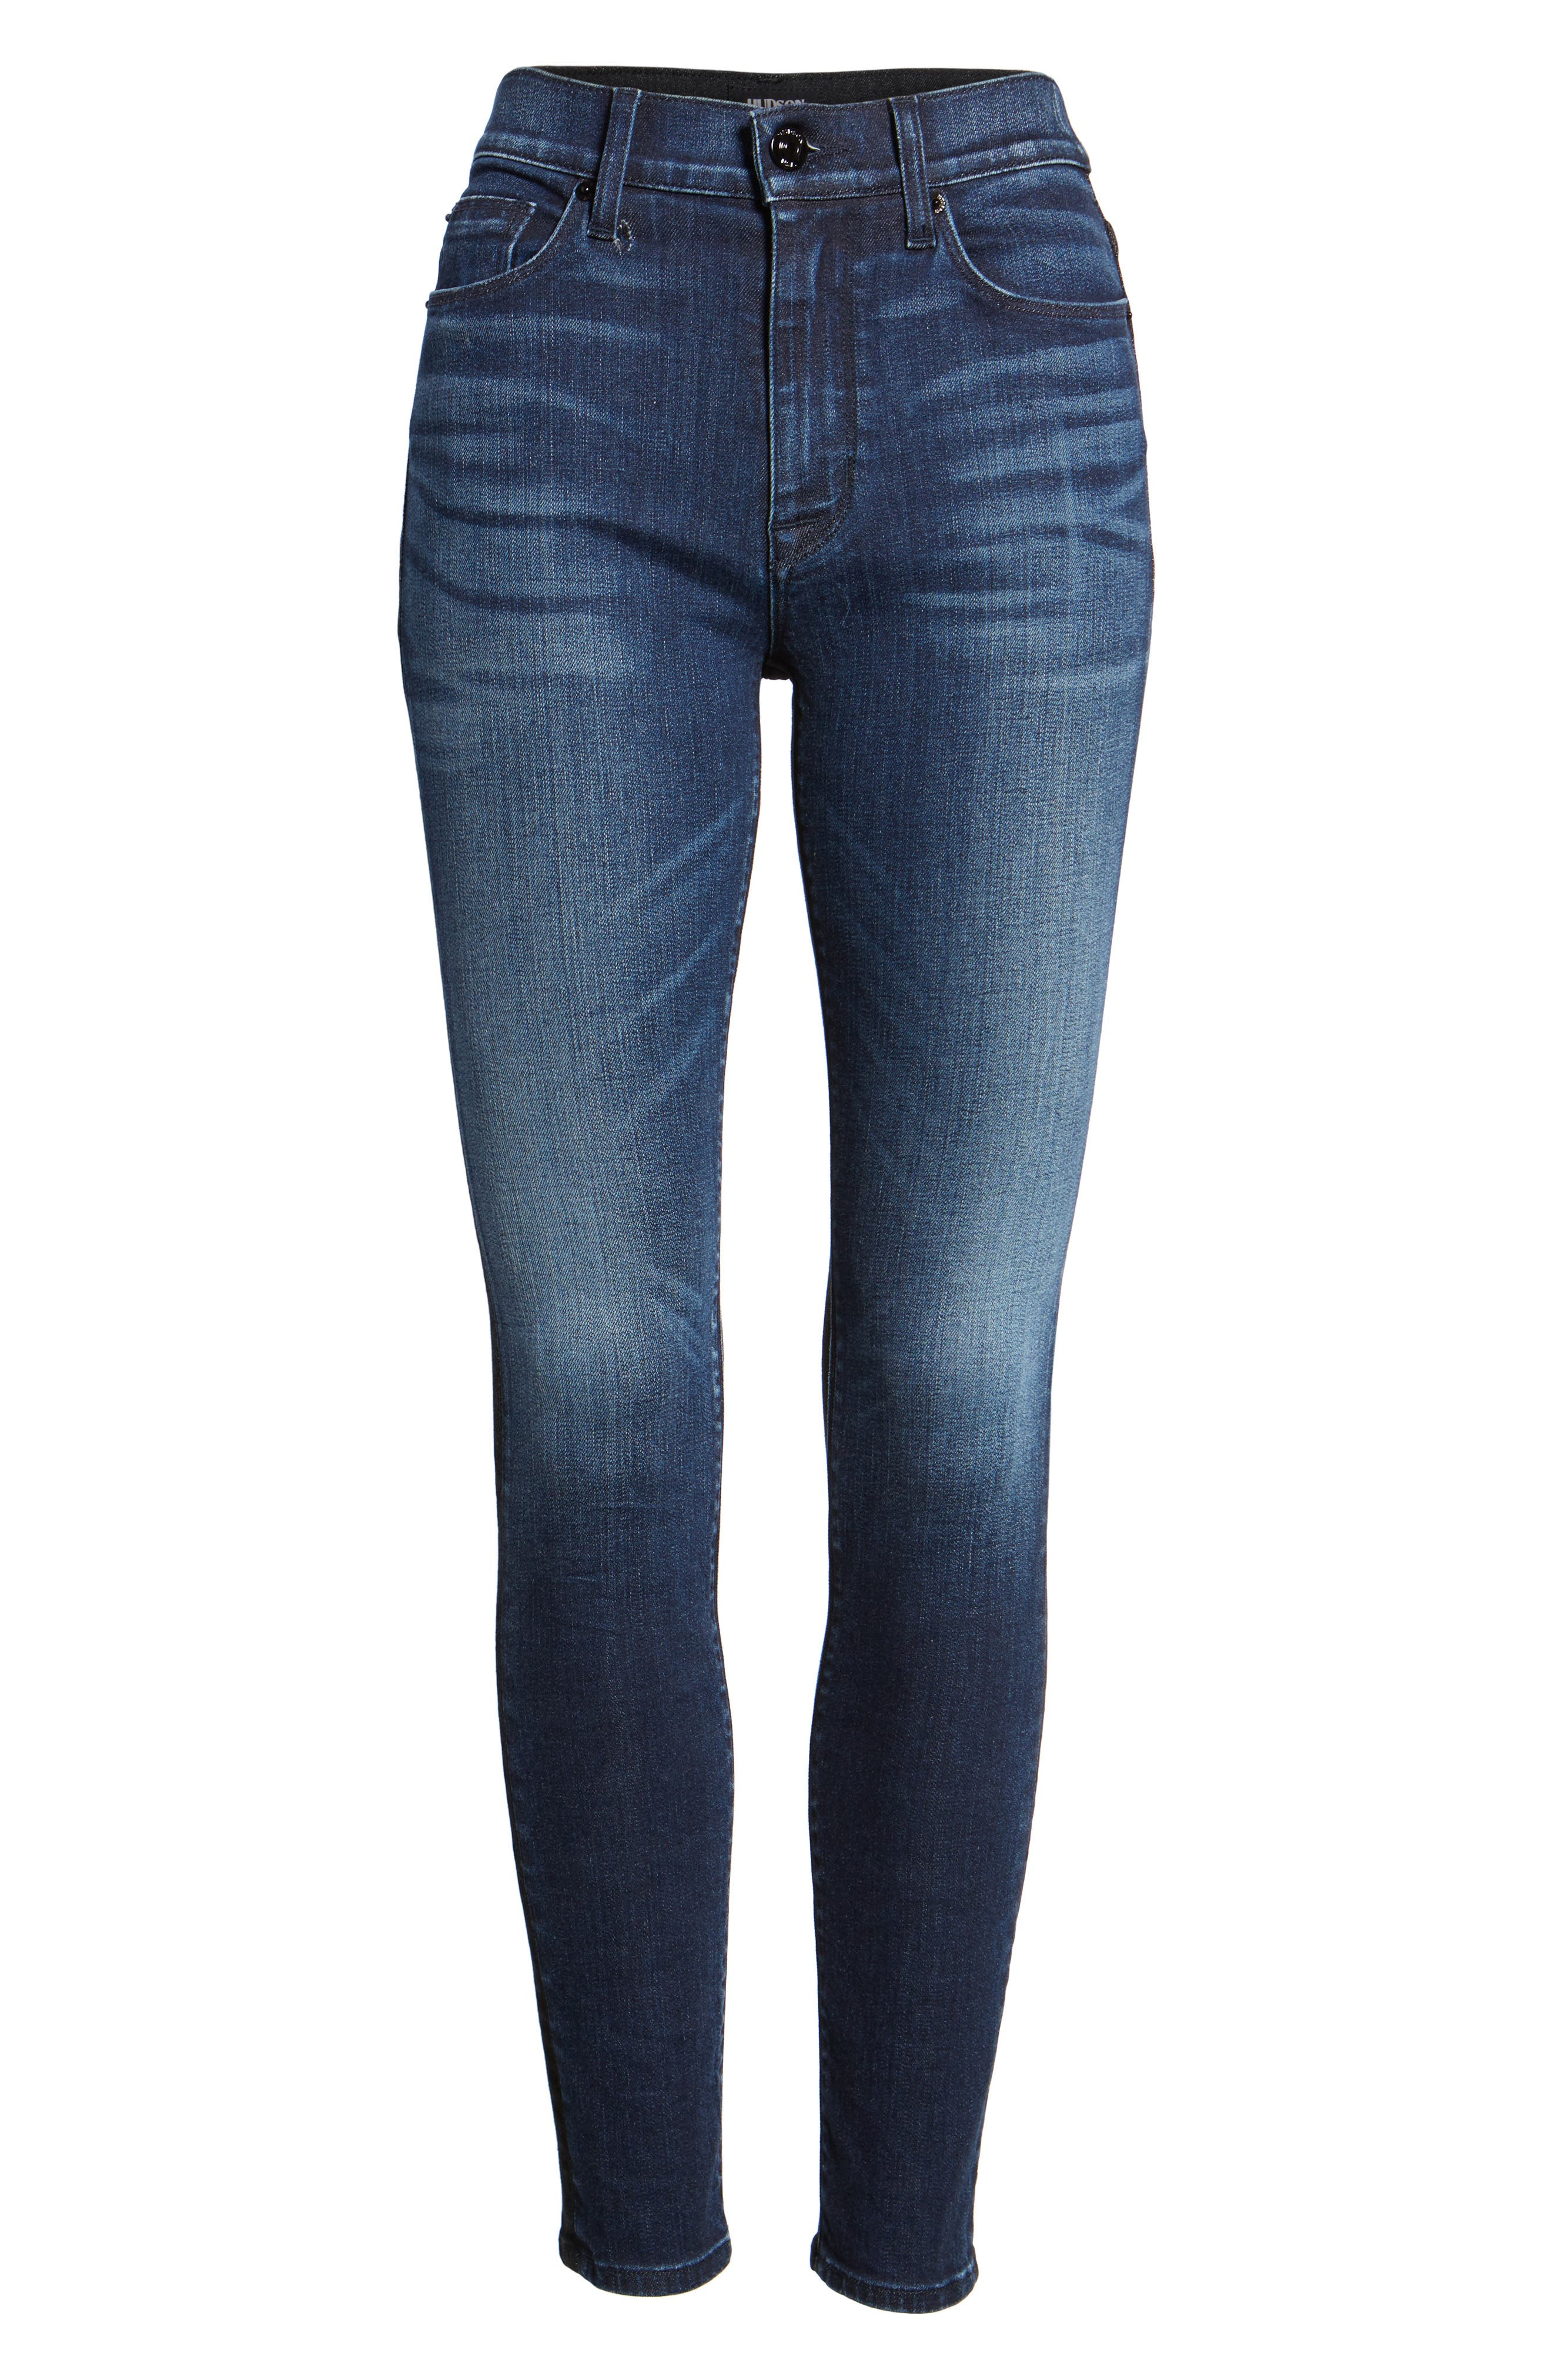 Barbara High Waist Ankle Skinny Jeans,                             Alternate thumbnail 7, color,                             006